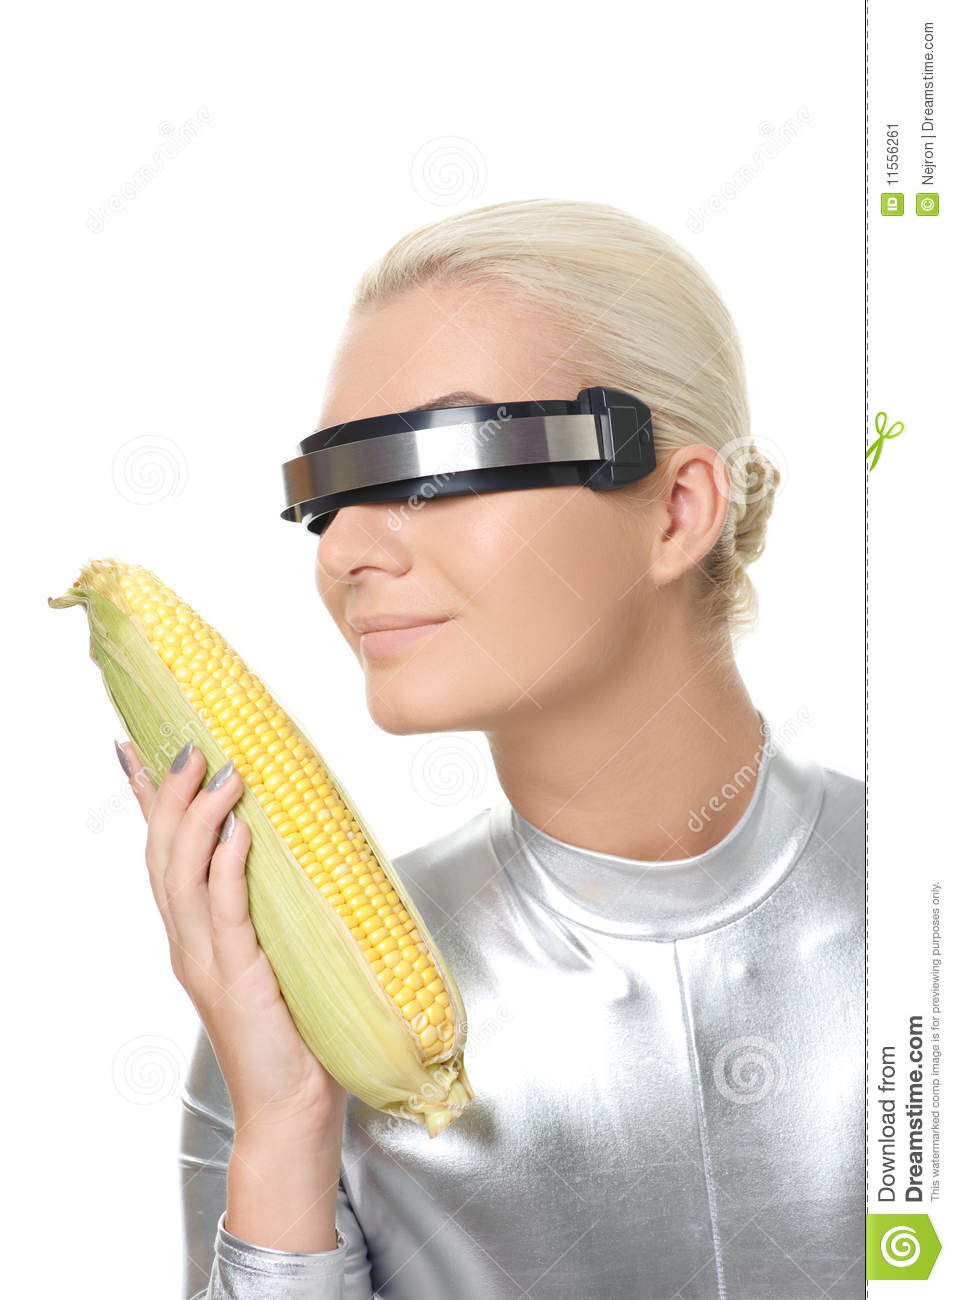 Cyber Woman With A Corn Stock Image - Image: 11556261